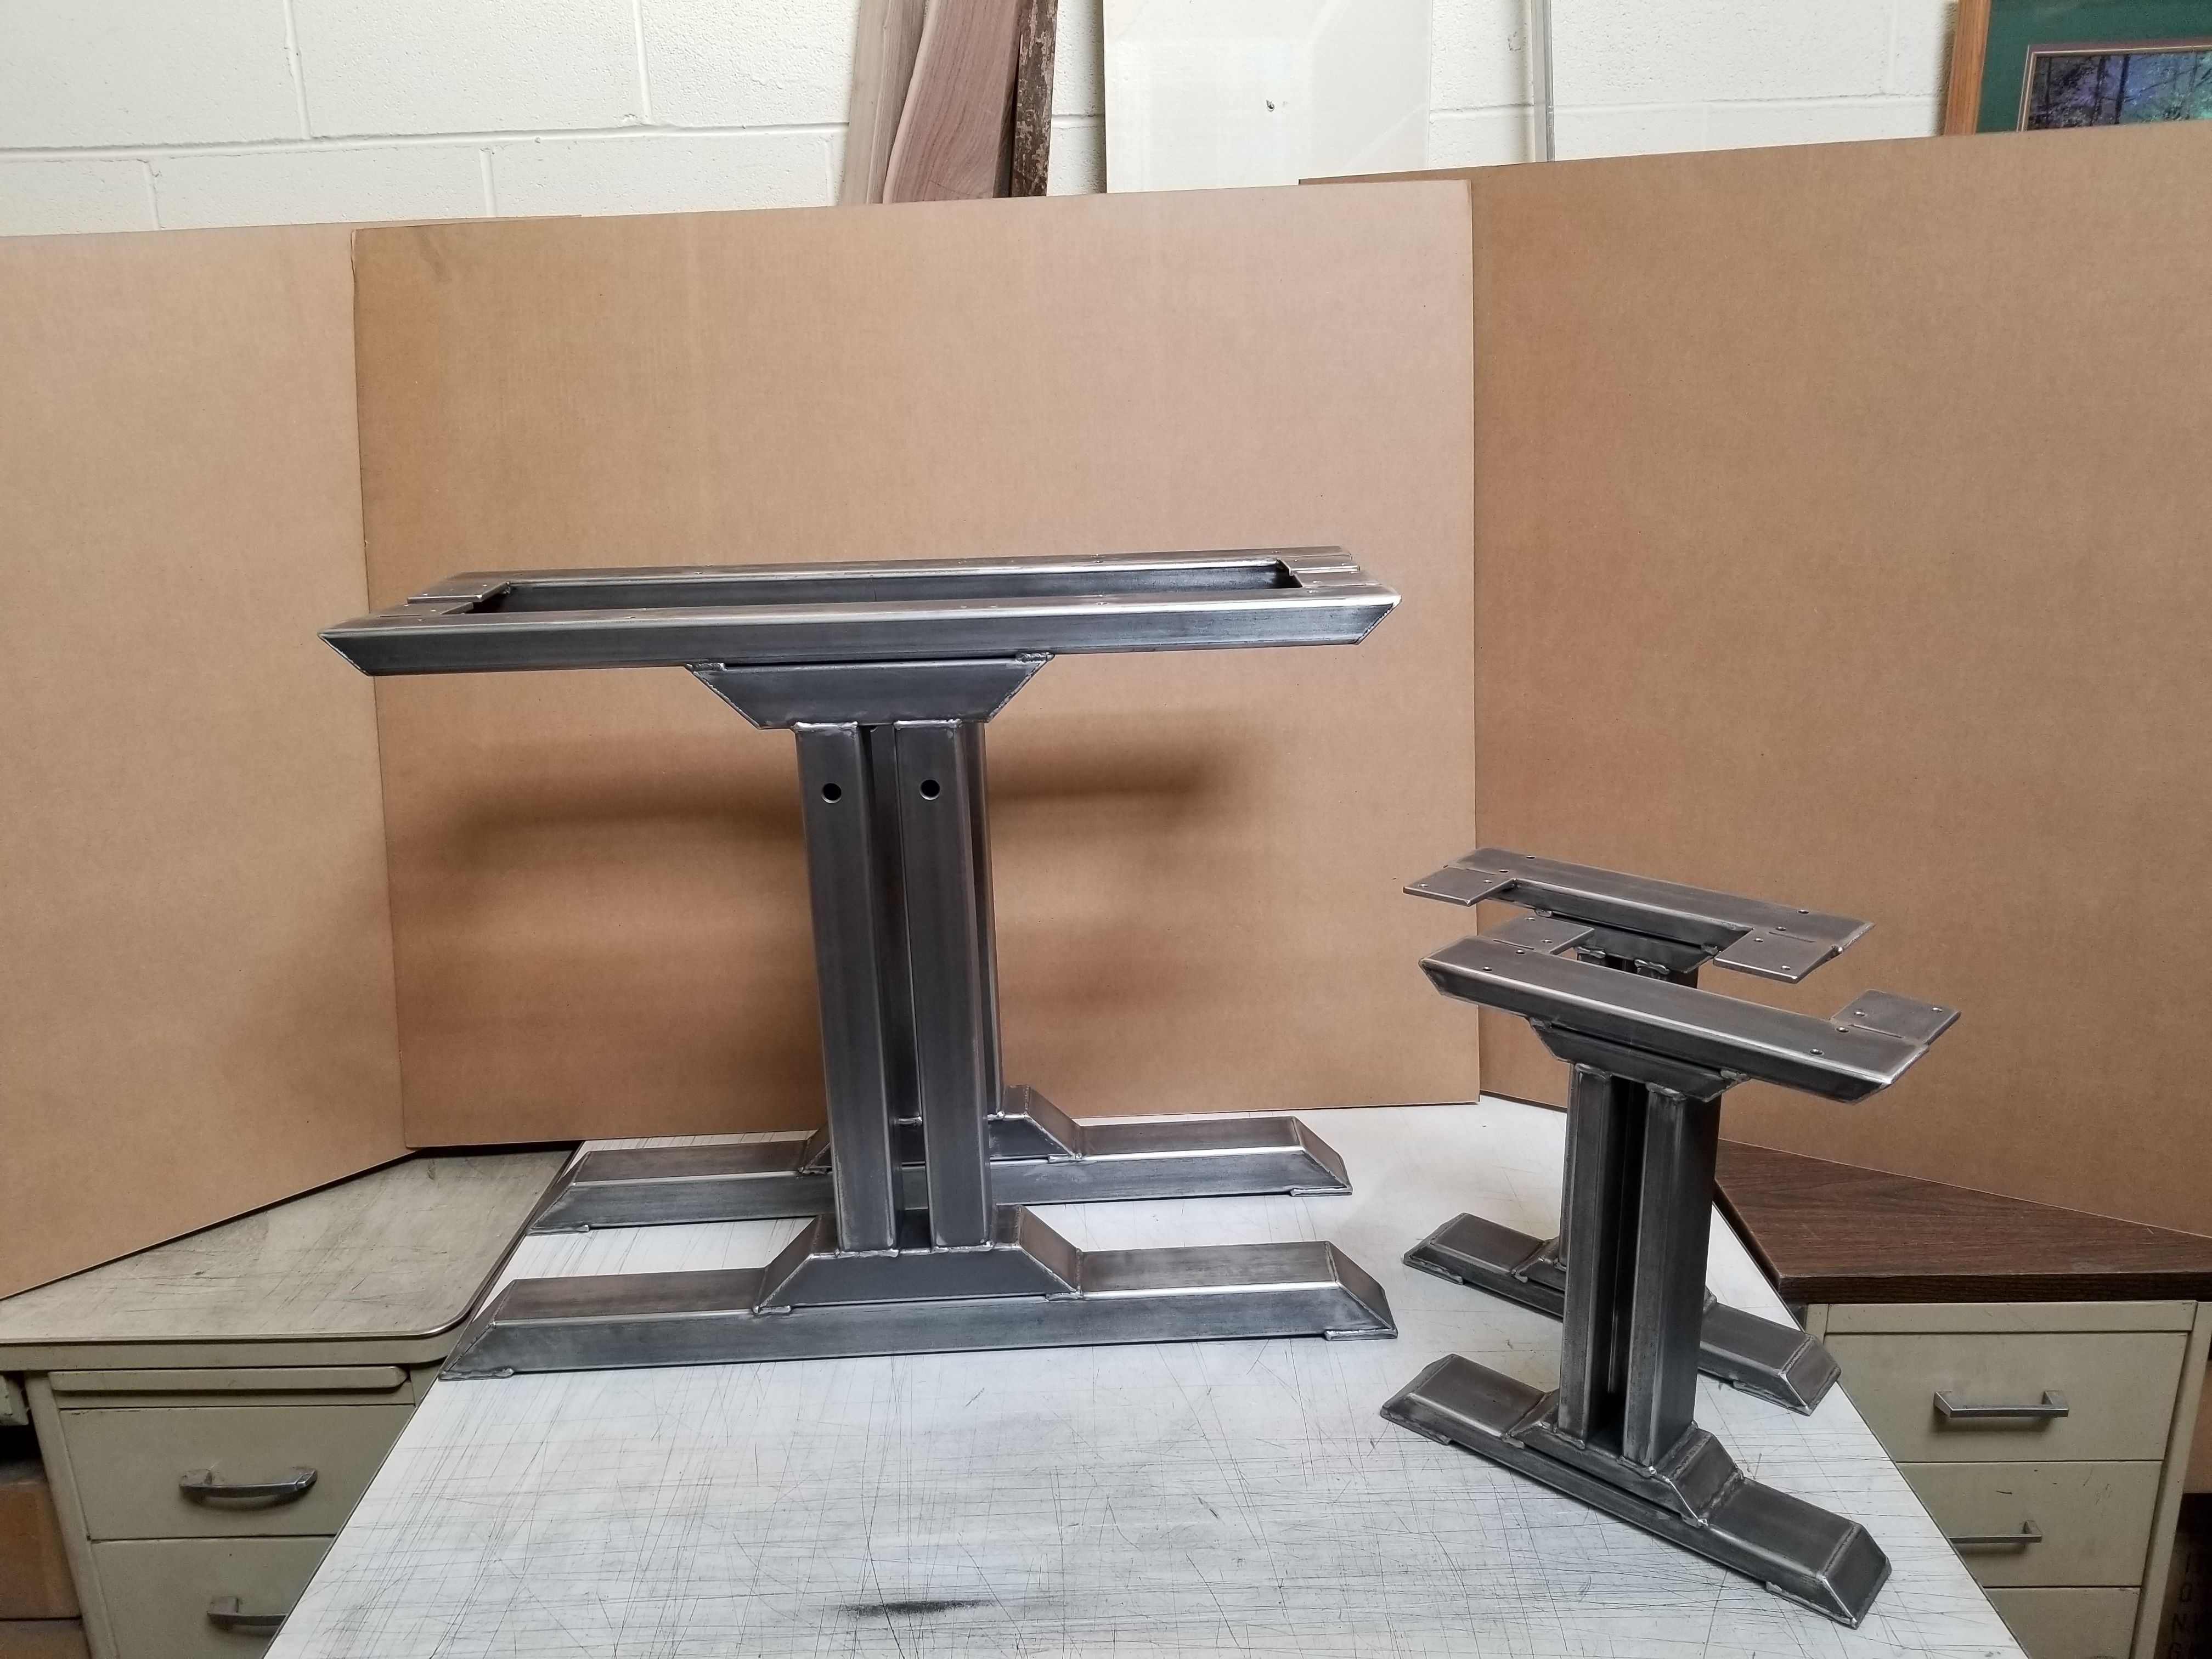 Contemporary dining table bases  Custom Made Stylish Dining Table Legs With Bench Legs  CA house